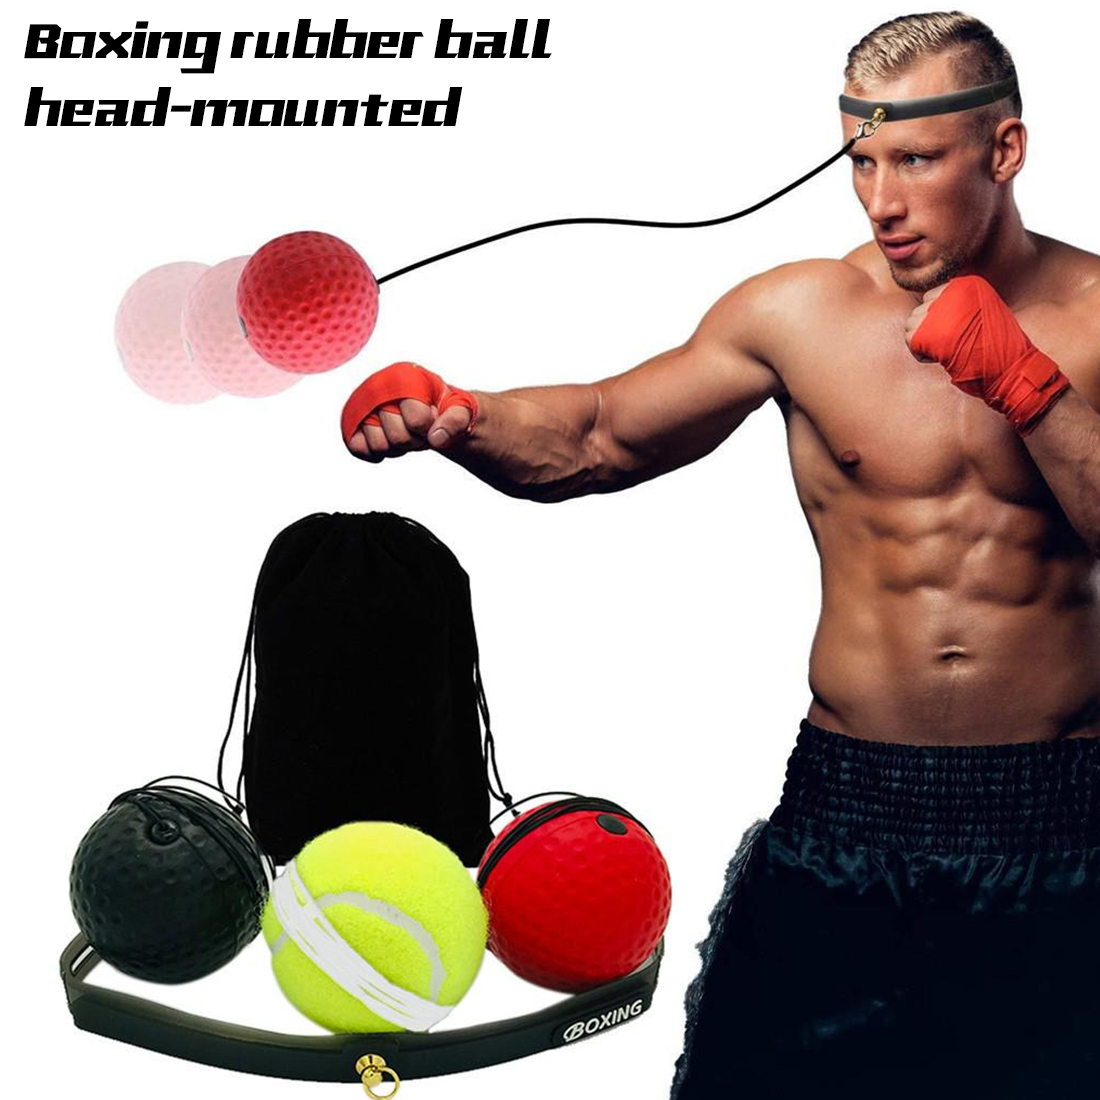 Boxing Reflex  Ball Speed With Adjustable Headband Head-mounted Boxing Reaction Training Ball Fitness Equipments